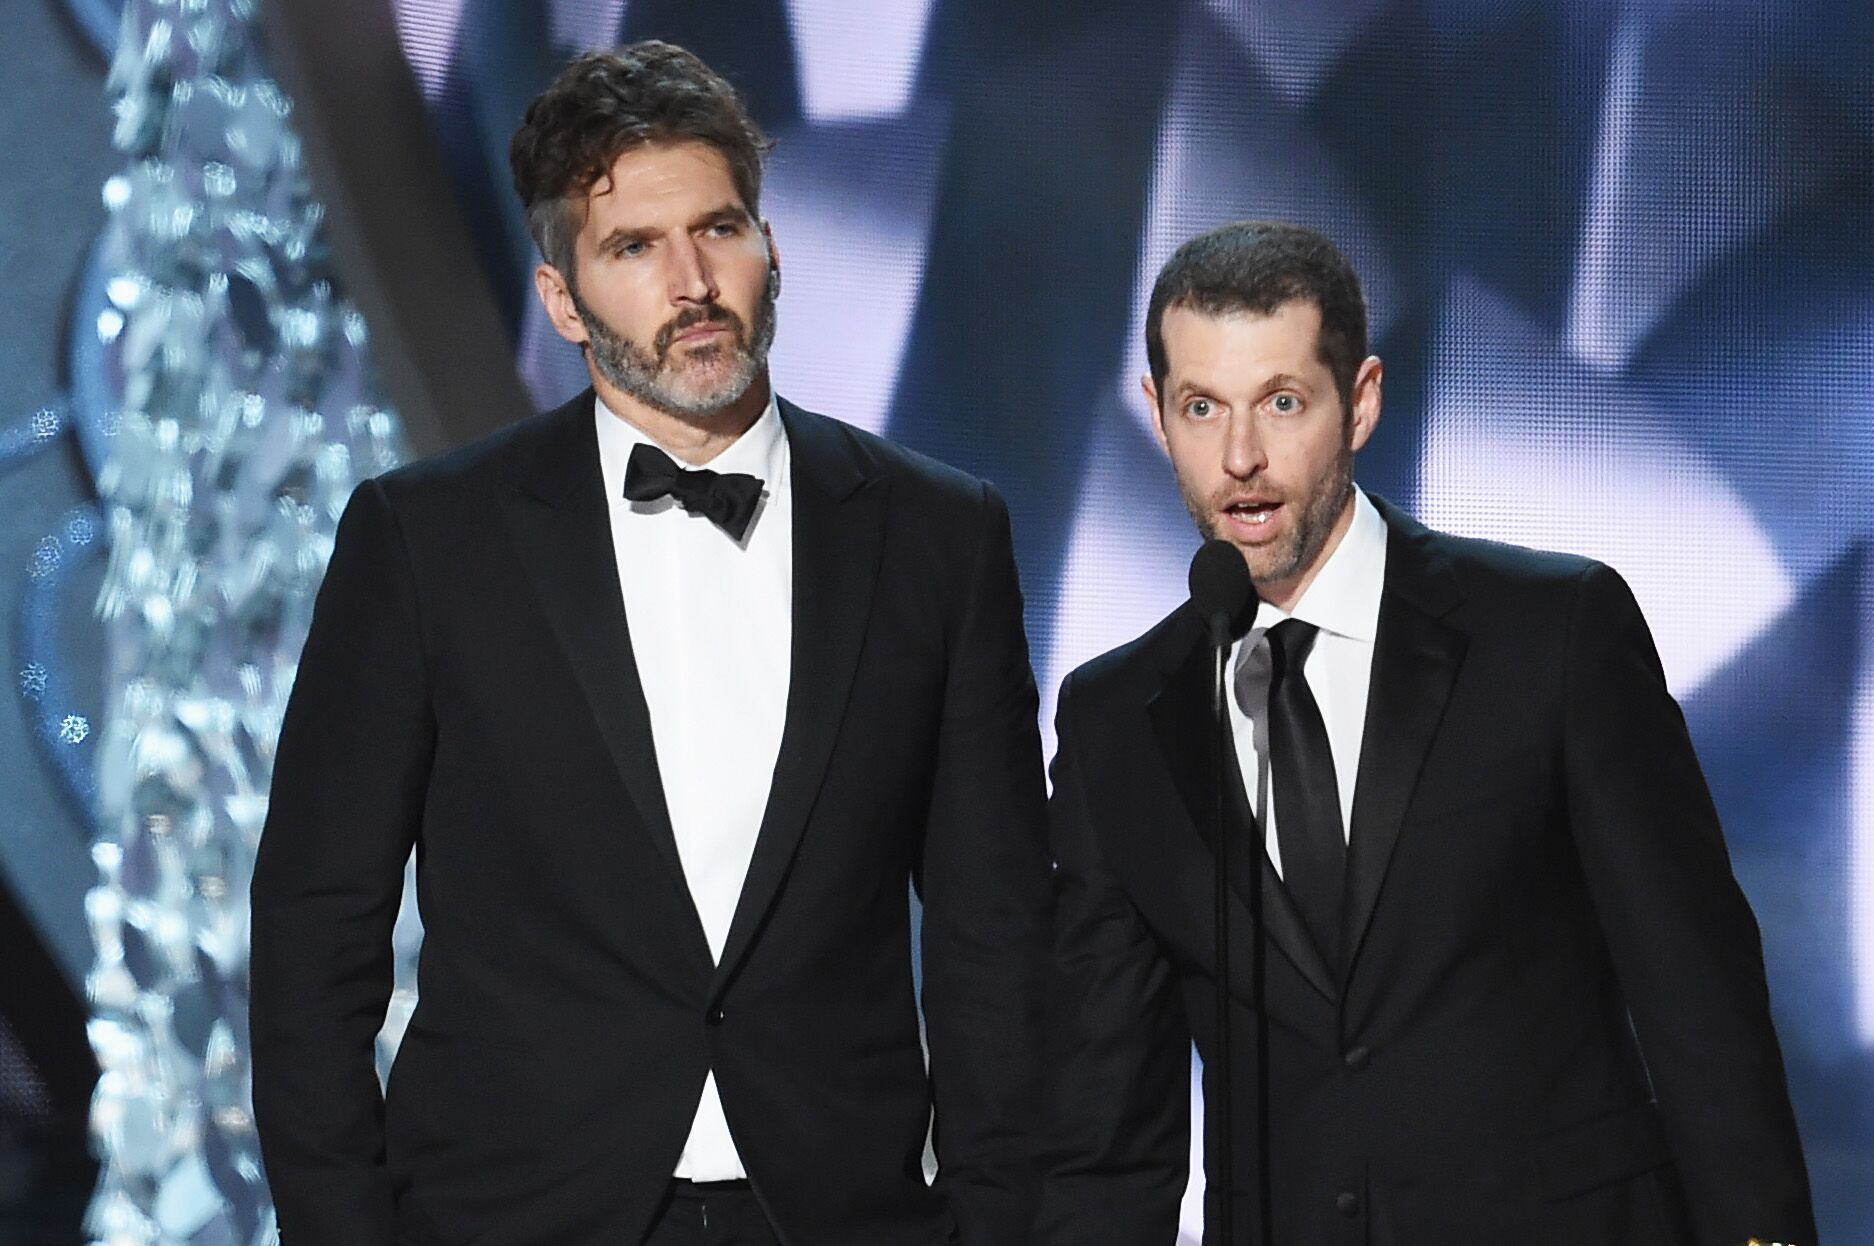 Star Wars rumor: Film trilogy by Benioff and Weiss to be set in the Old Republic